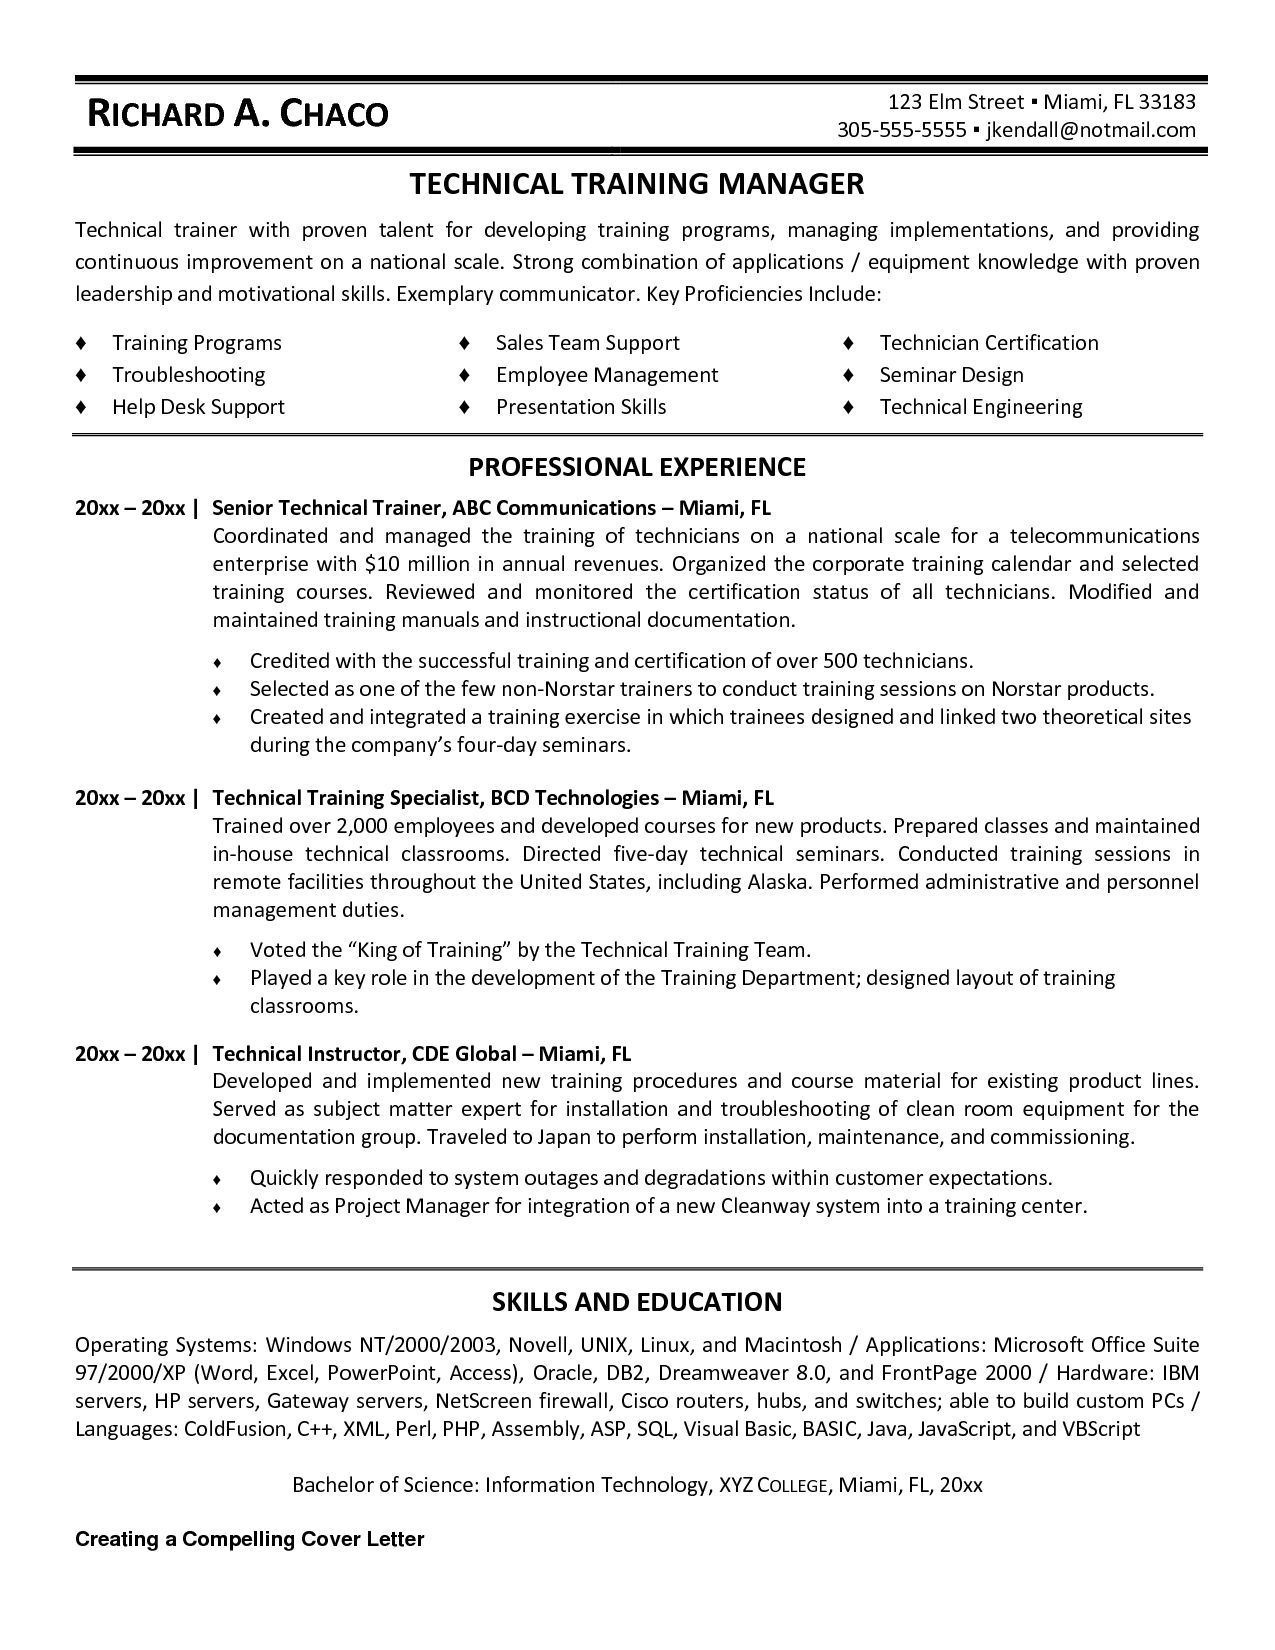 Trainer Resume Examples Grude Interpretomics Co